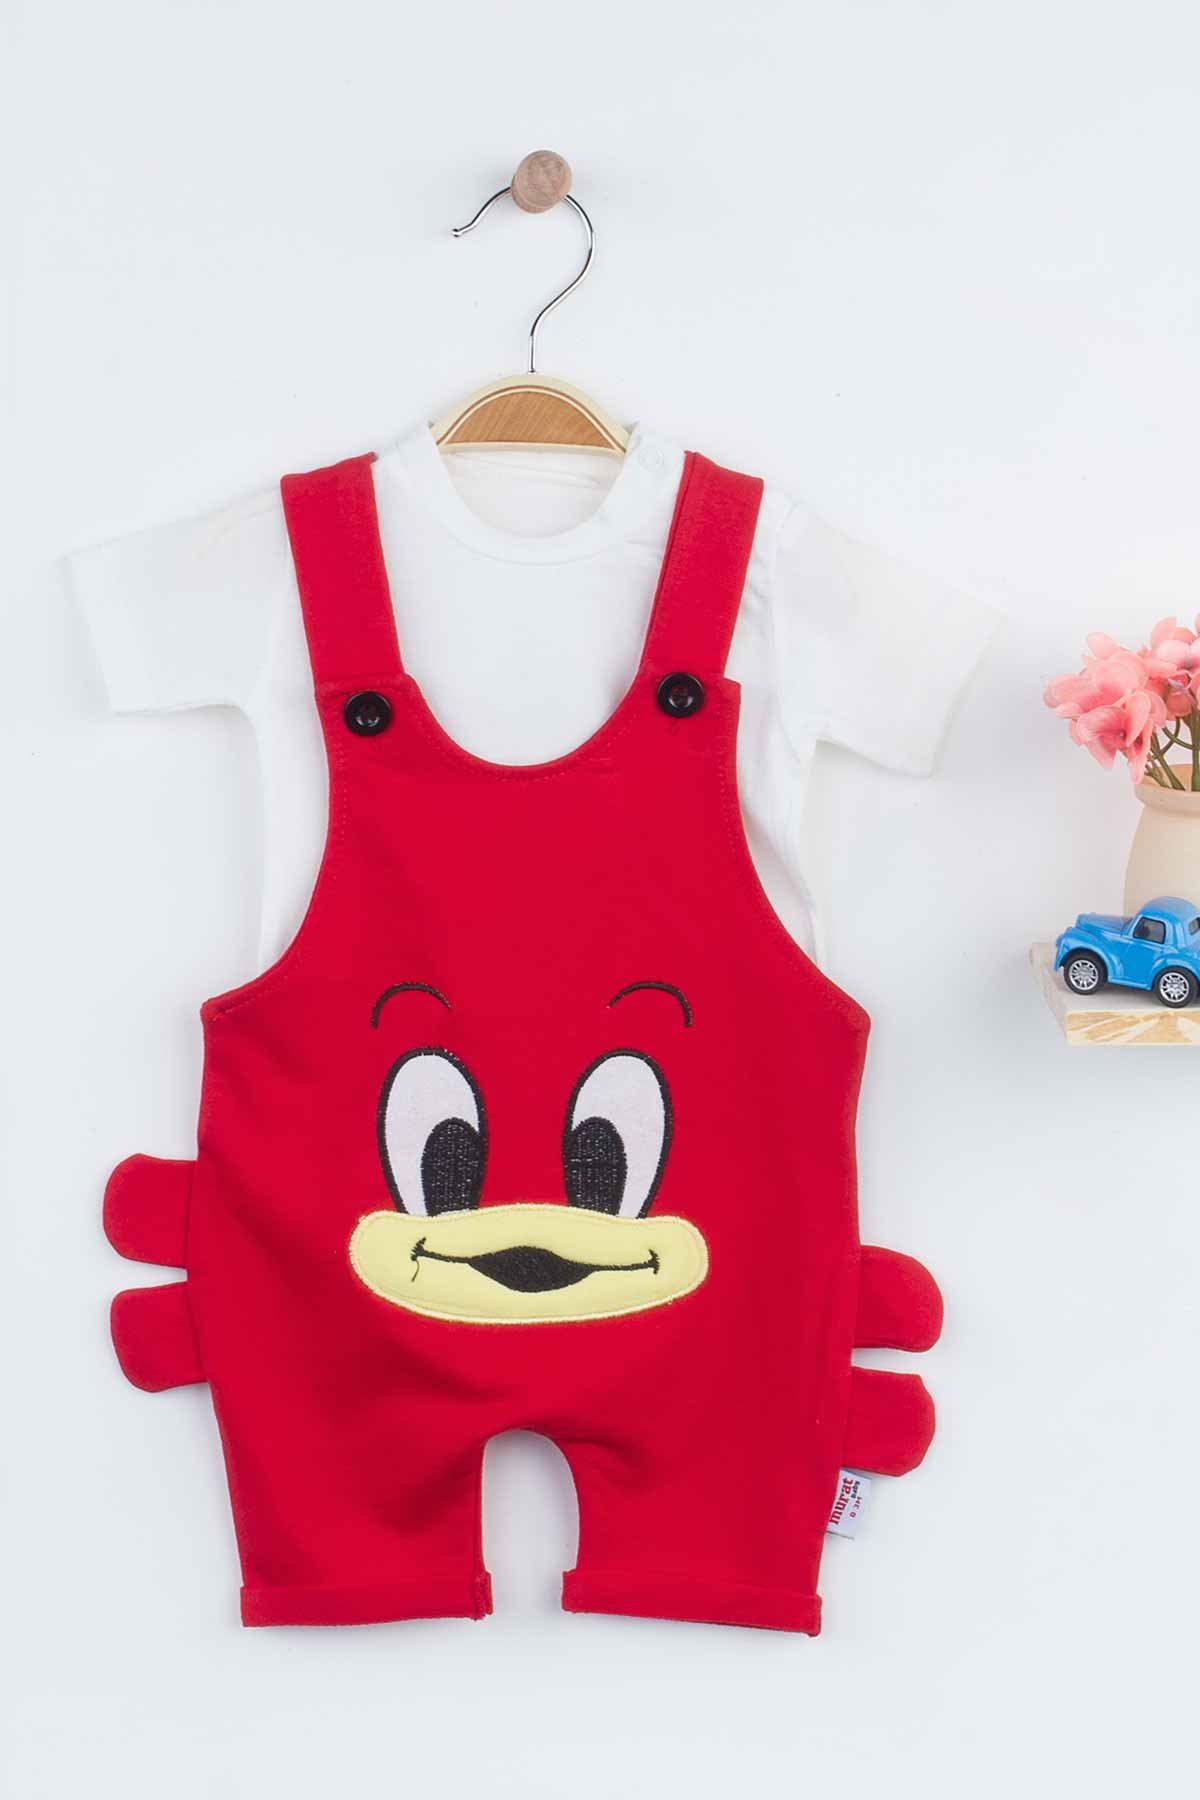 Red Baby Boy Rompers Summer Fashion 2021 New Season Style Babies Clothes Outfit Cotton Comfortable Underwear for Boys Baby Models